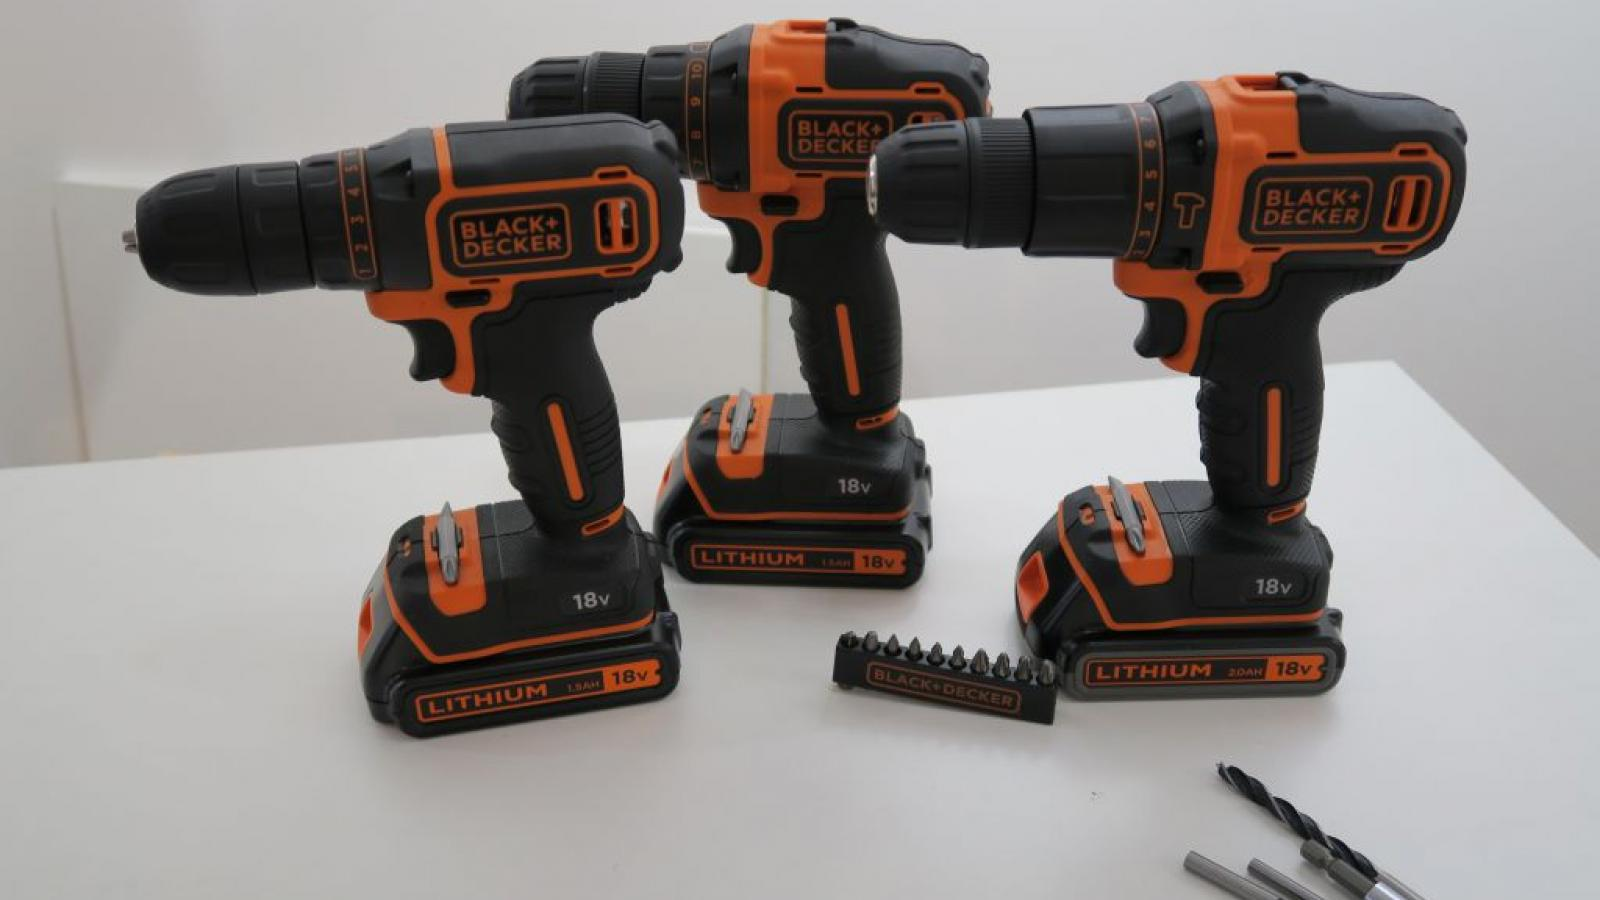 Perceuse black et decker 18v 2ah - Perceuse black et decker 18v ...